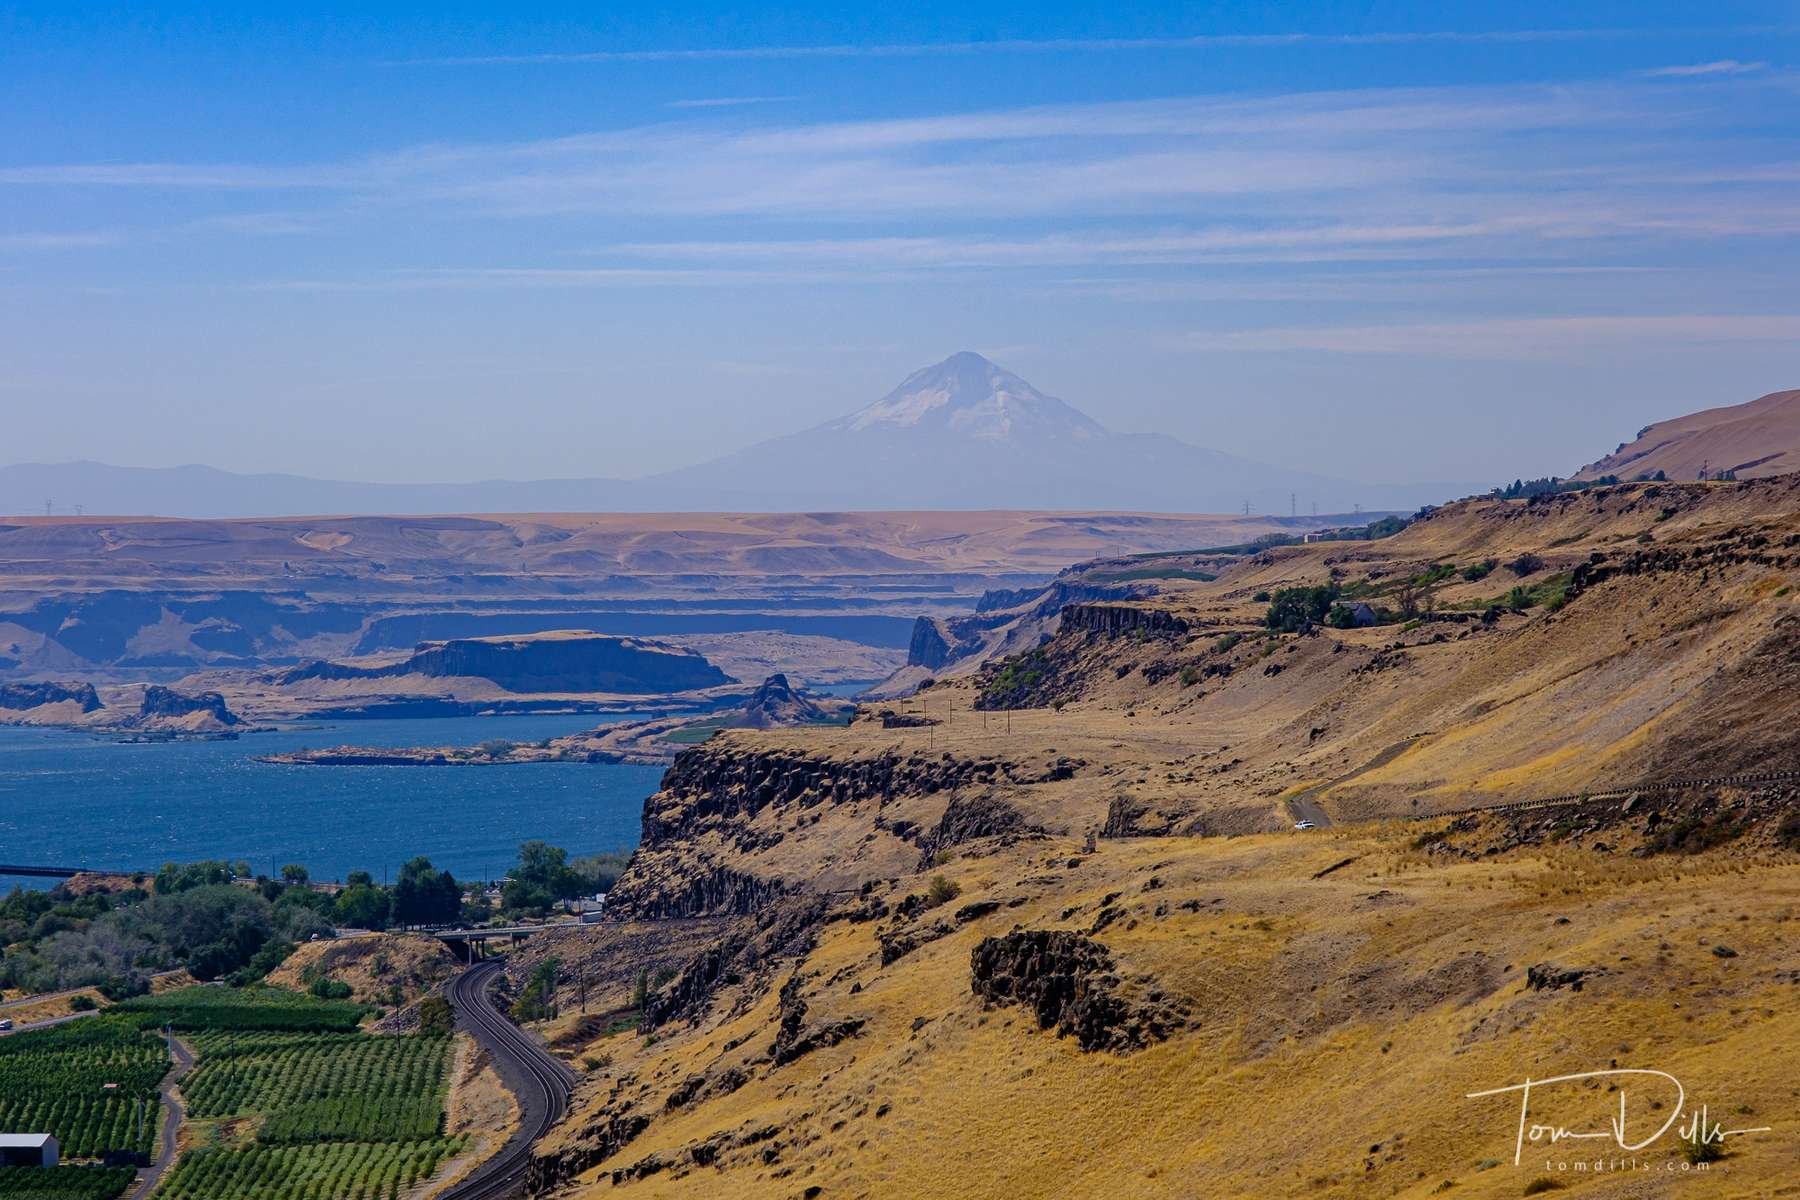 The Columbia River Valley from Stonehenge along SR-14 near Maryhill, Washington.  Mount Hood (Oregon) is in the distance.